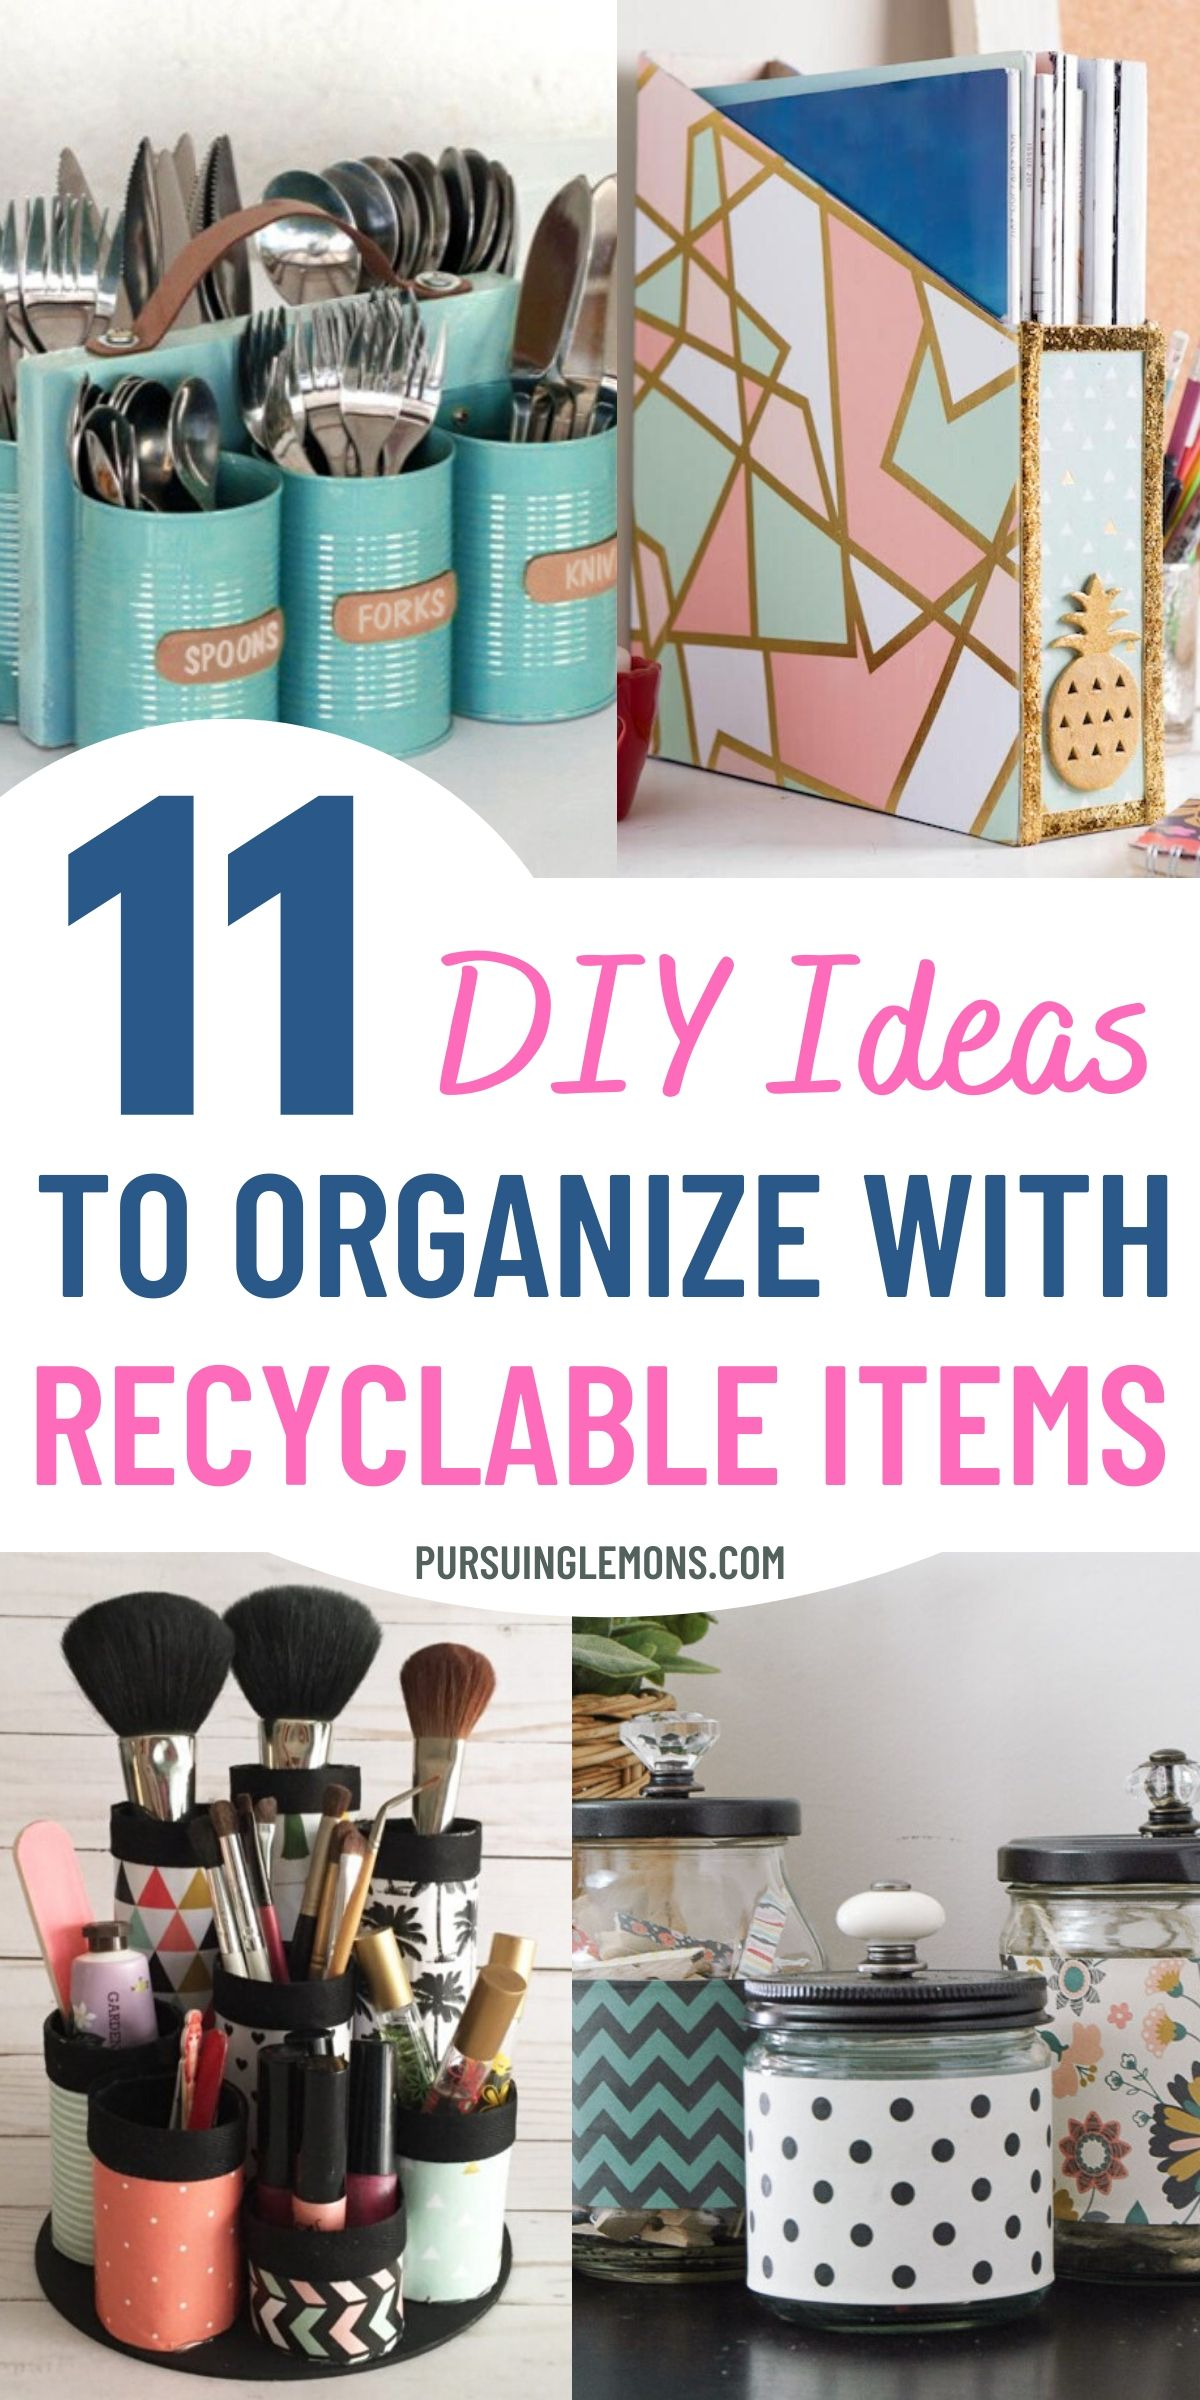 11 DIY Ideas To Organize With Recyclable Items | Organize your home while saving money with these DIY organization ideas with recyclable items! The things you are throwing away can create amazing organizers, so organize in a budget! #diyorganizers #recycle #cheaporganization